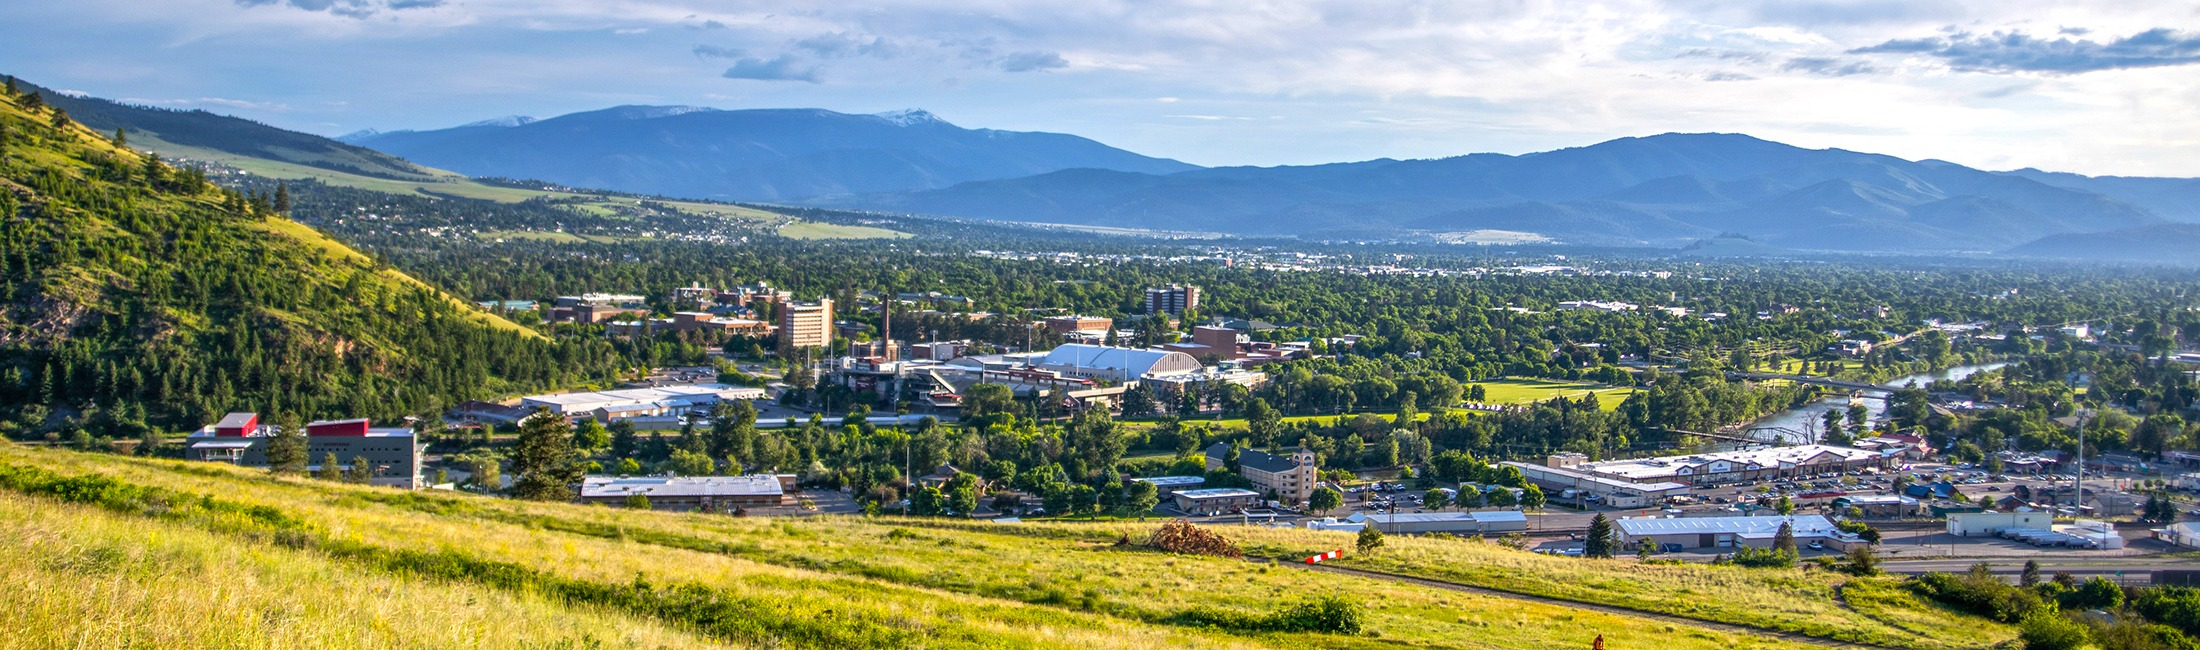 Missoula Makes List of 2019 Top 10 Forward Thinking US Cities